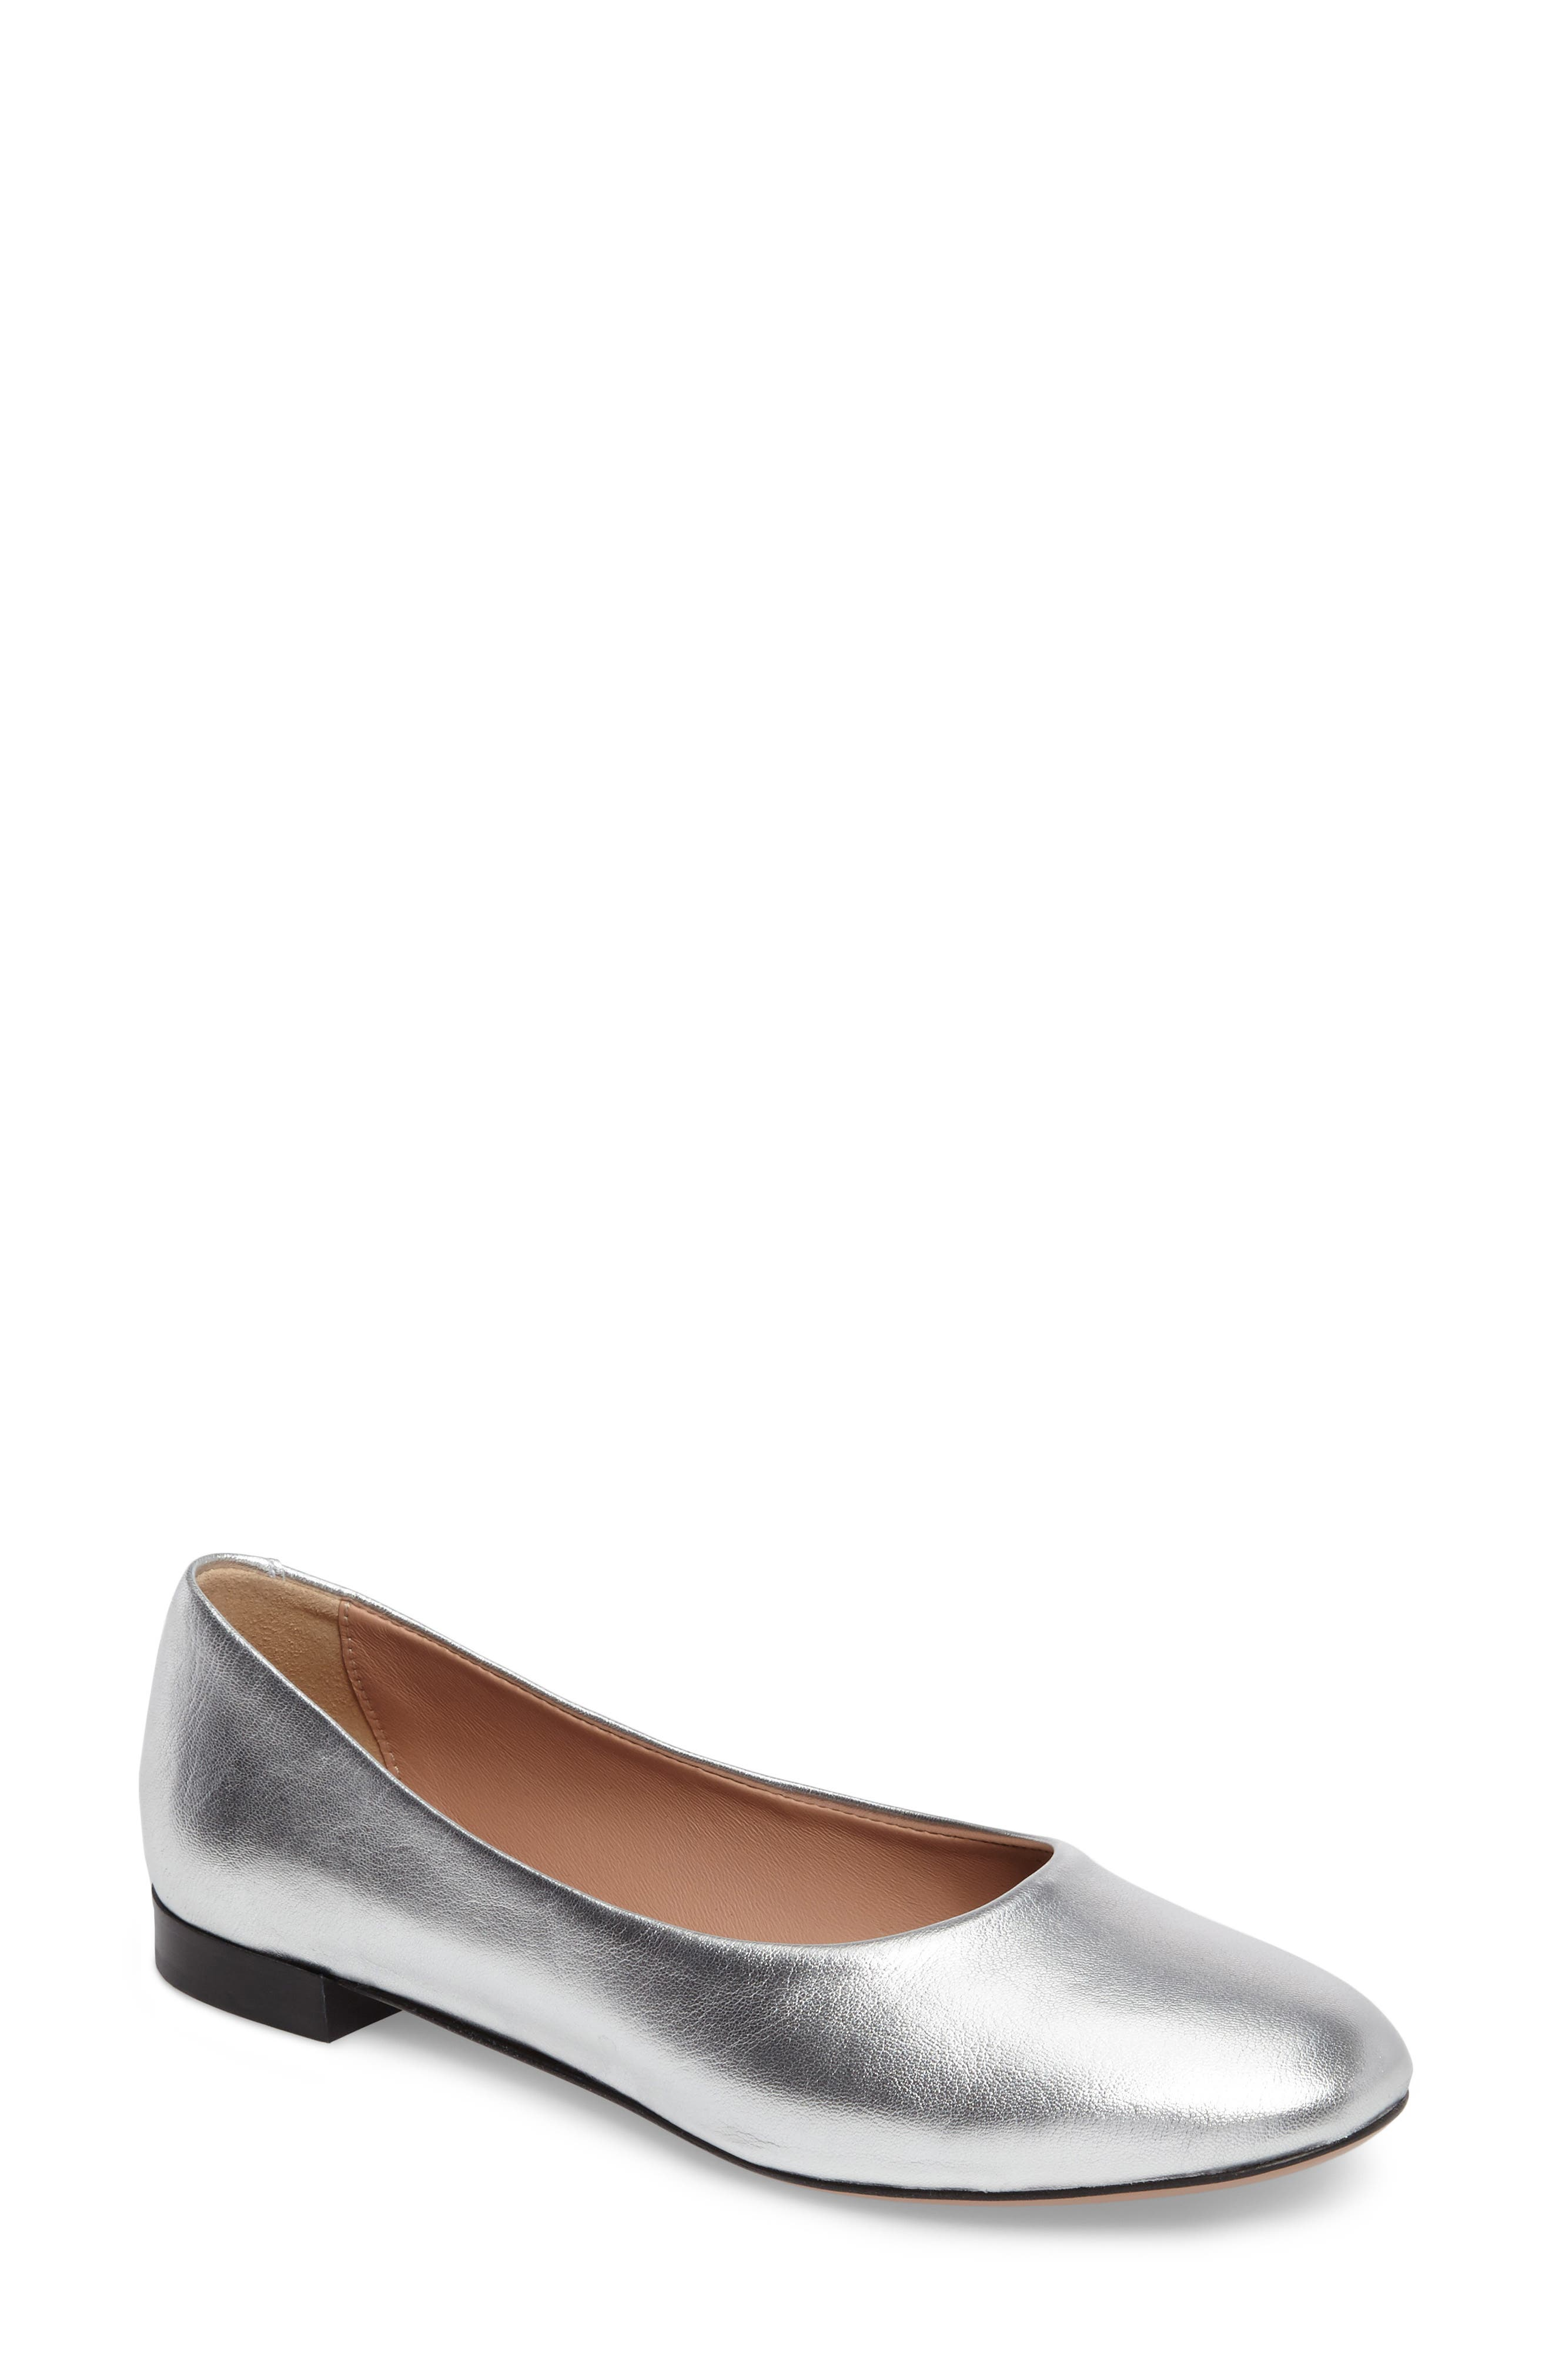 Gemma Ballerina Flat,                         Main,                         color, Silver Leather